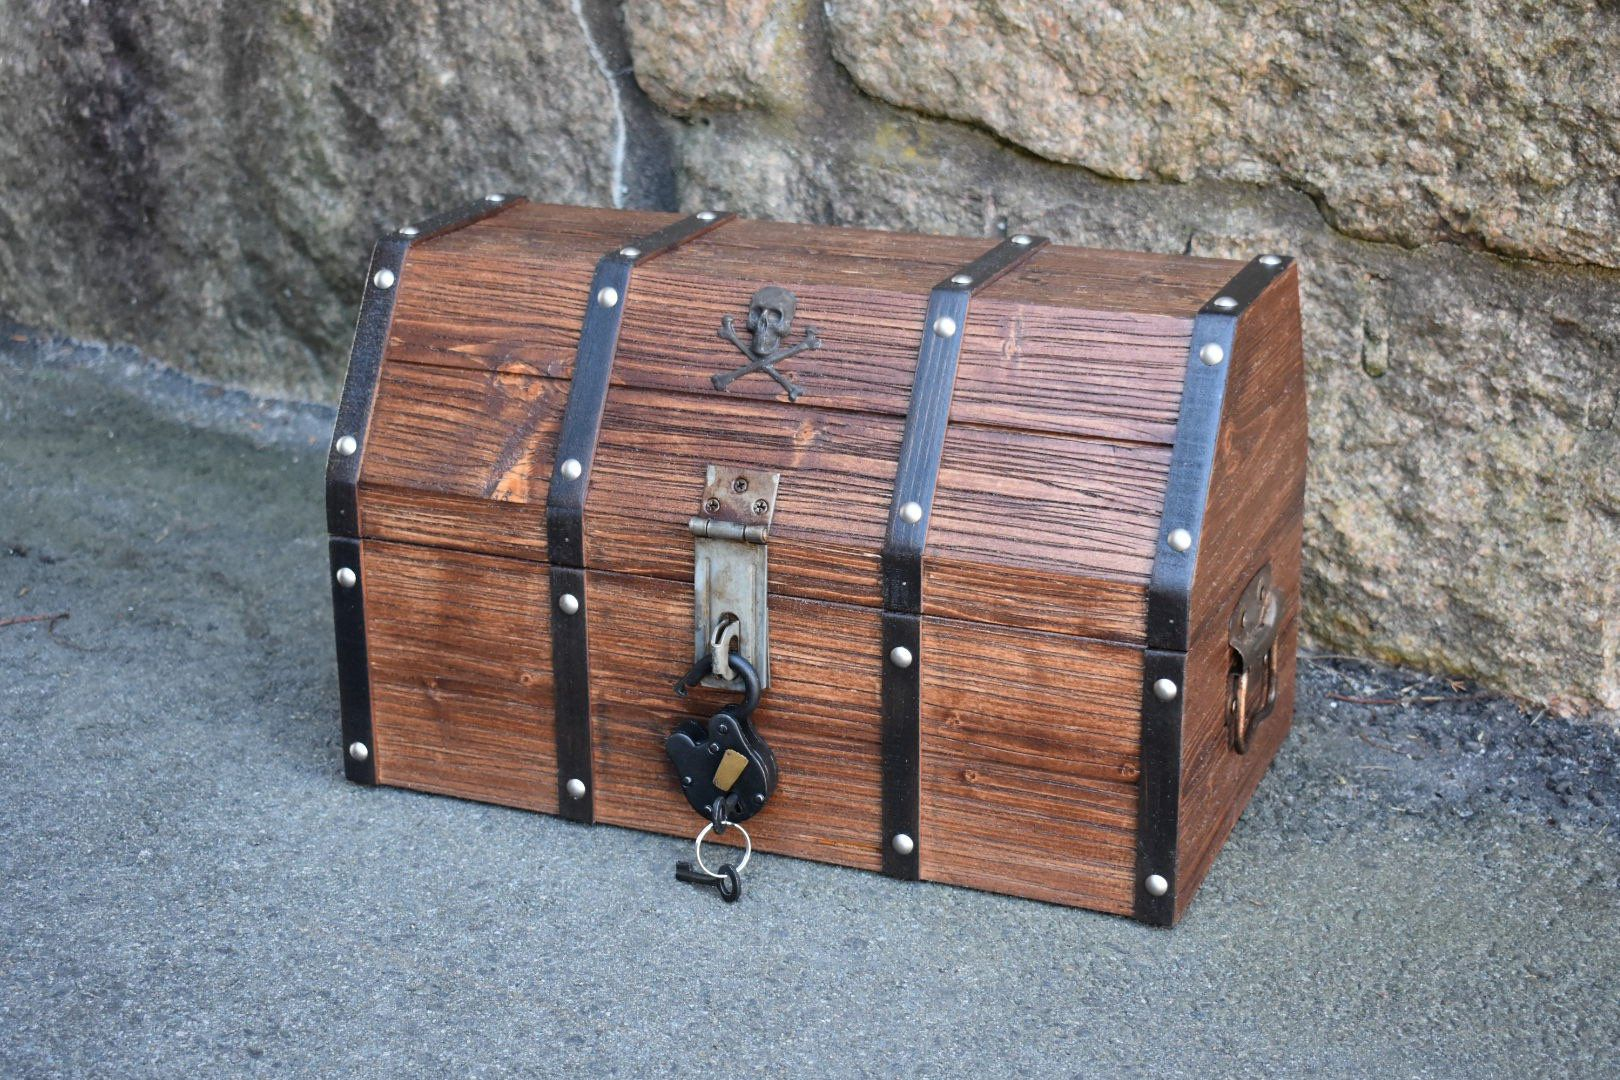 Treasure Chest Toy Chest Large Treasure Chest Pirate Chest Pirate Decor Rustic Chest Antique Chest Treasure Chest